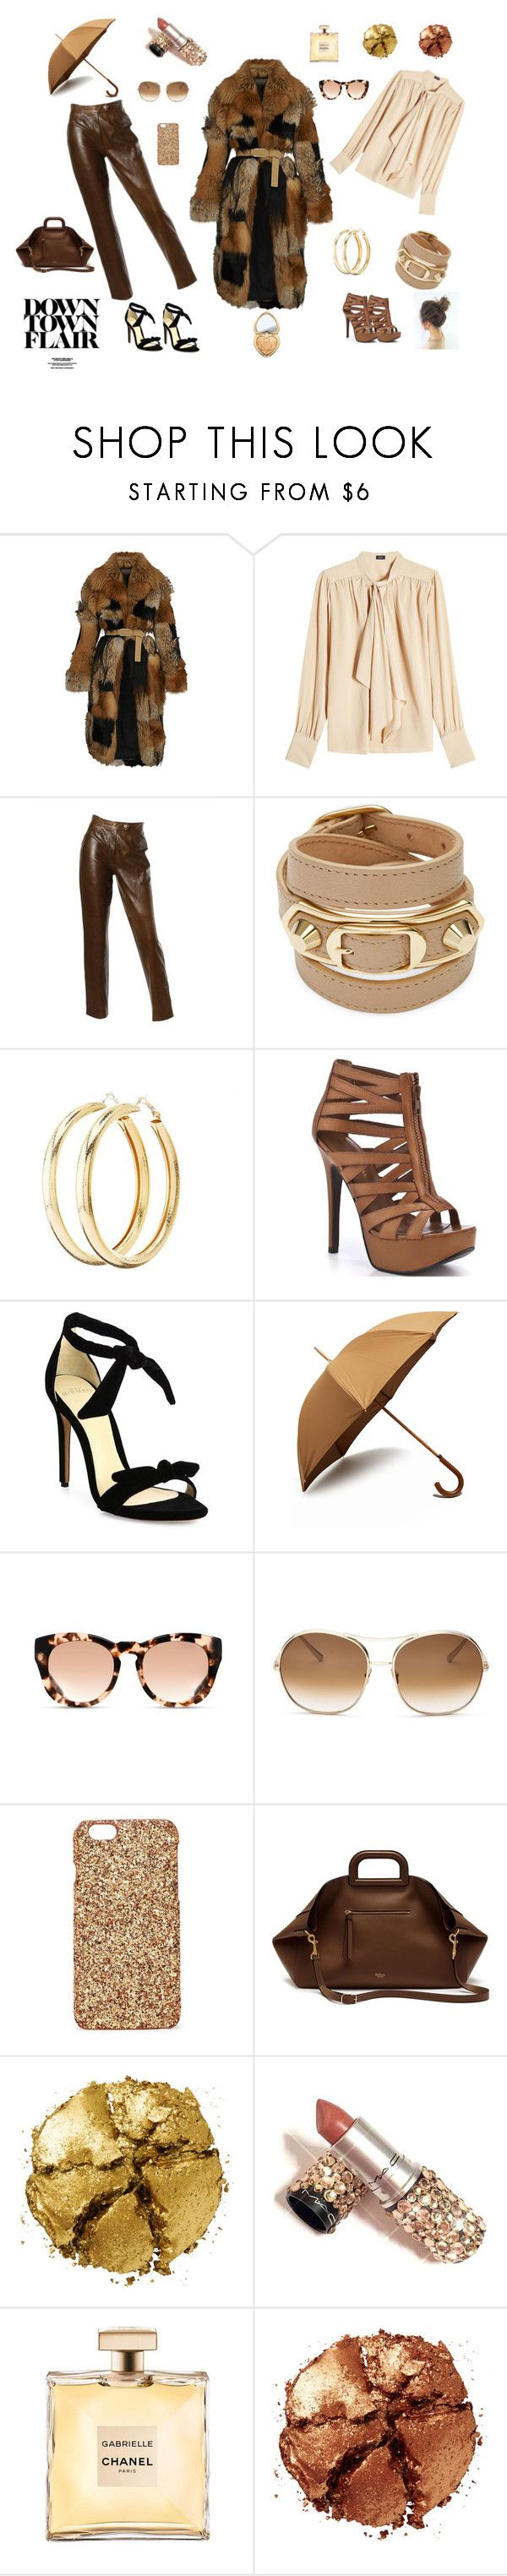 style inspiration by joy-huntley on Polyvore featuring Joseph, Louis Vuitton, Burberry, Alexandre Birman, Chinese Laundry, Mulberry, Balenciaga, Charlotte Russe, Chloé and Michael Kors